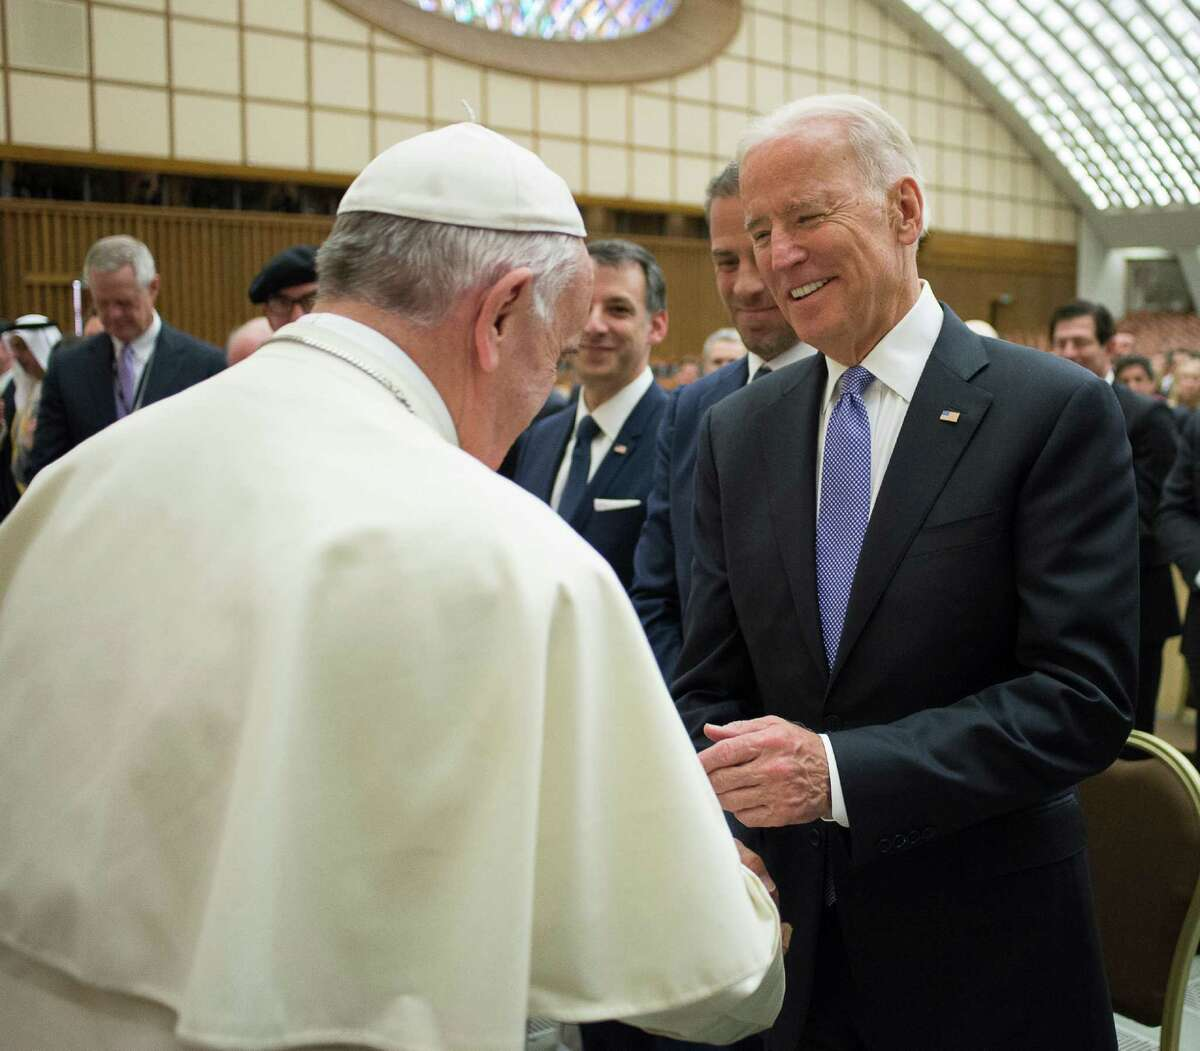 Pope Francis shakes hands with US vice president Joe Biden as he takes part at a congress on the progress of regenerative medicine and its cultural impact, being held in the Pope Paul VI hall at the Vatican, Friday, April 29, 2016. (L'Osservatore Romano/Pool photo via AP) ORG XMIT: OSS102